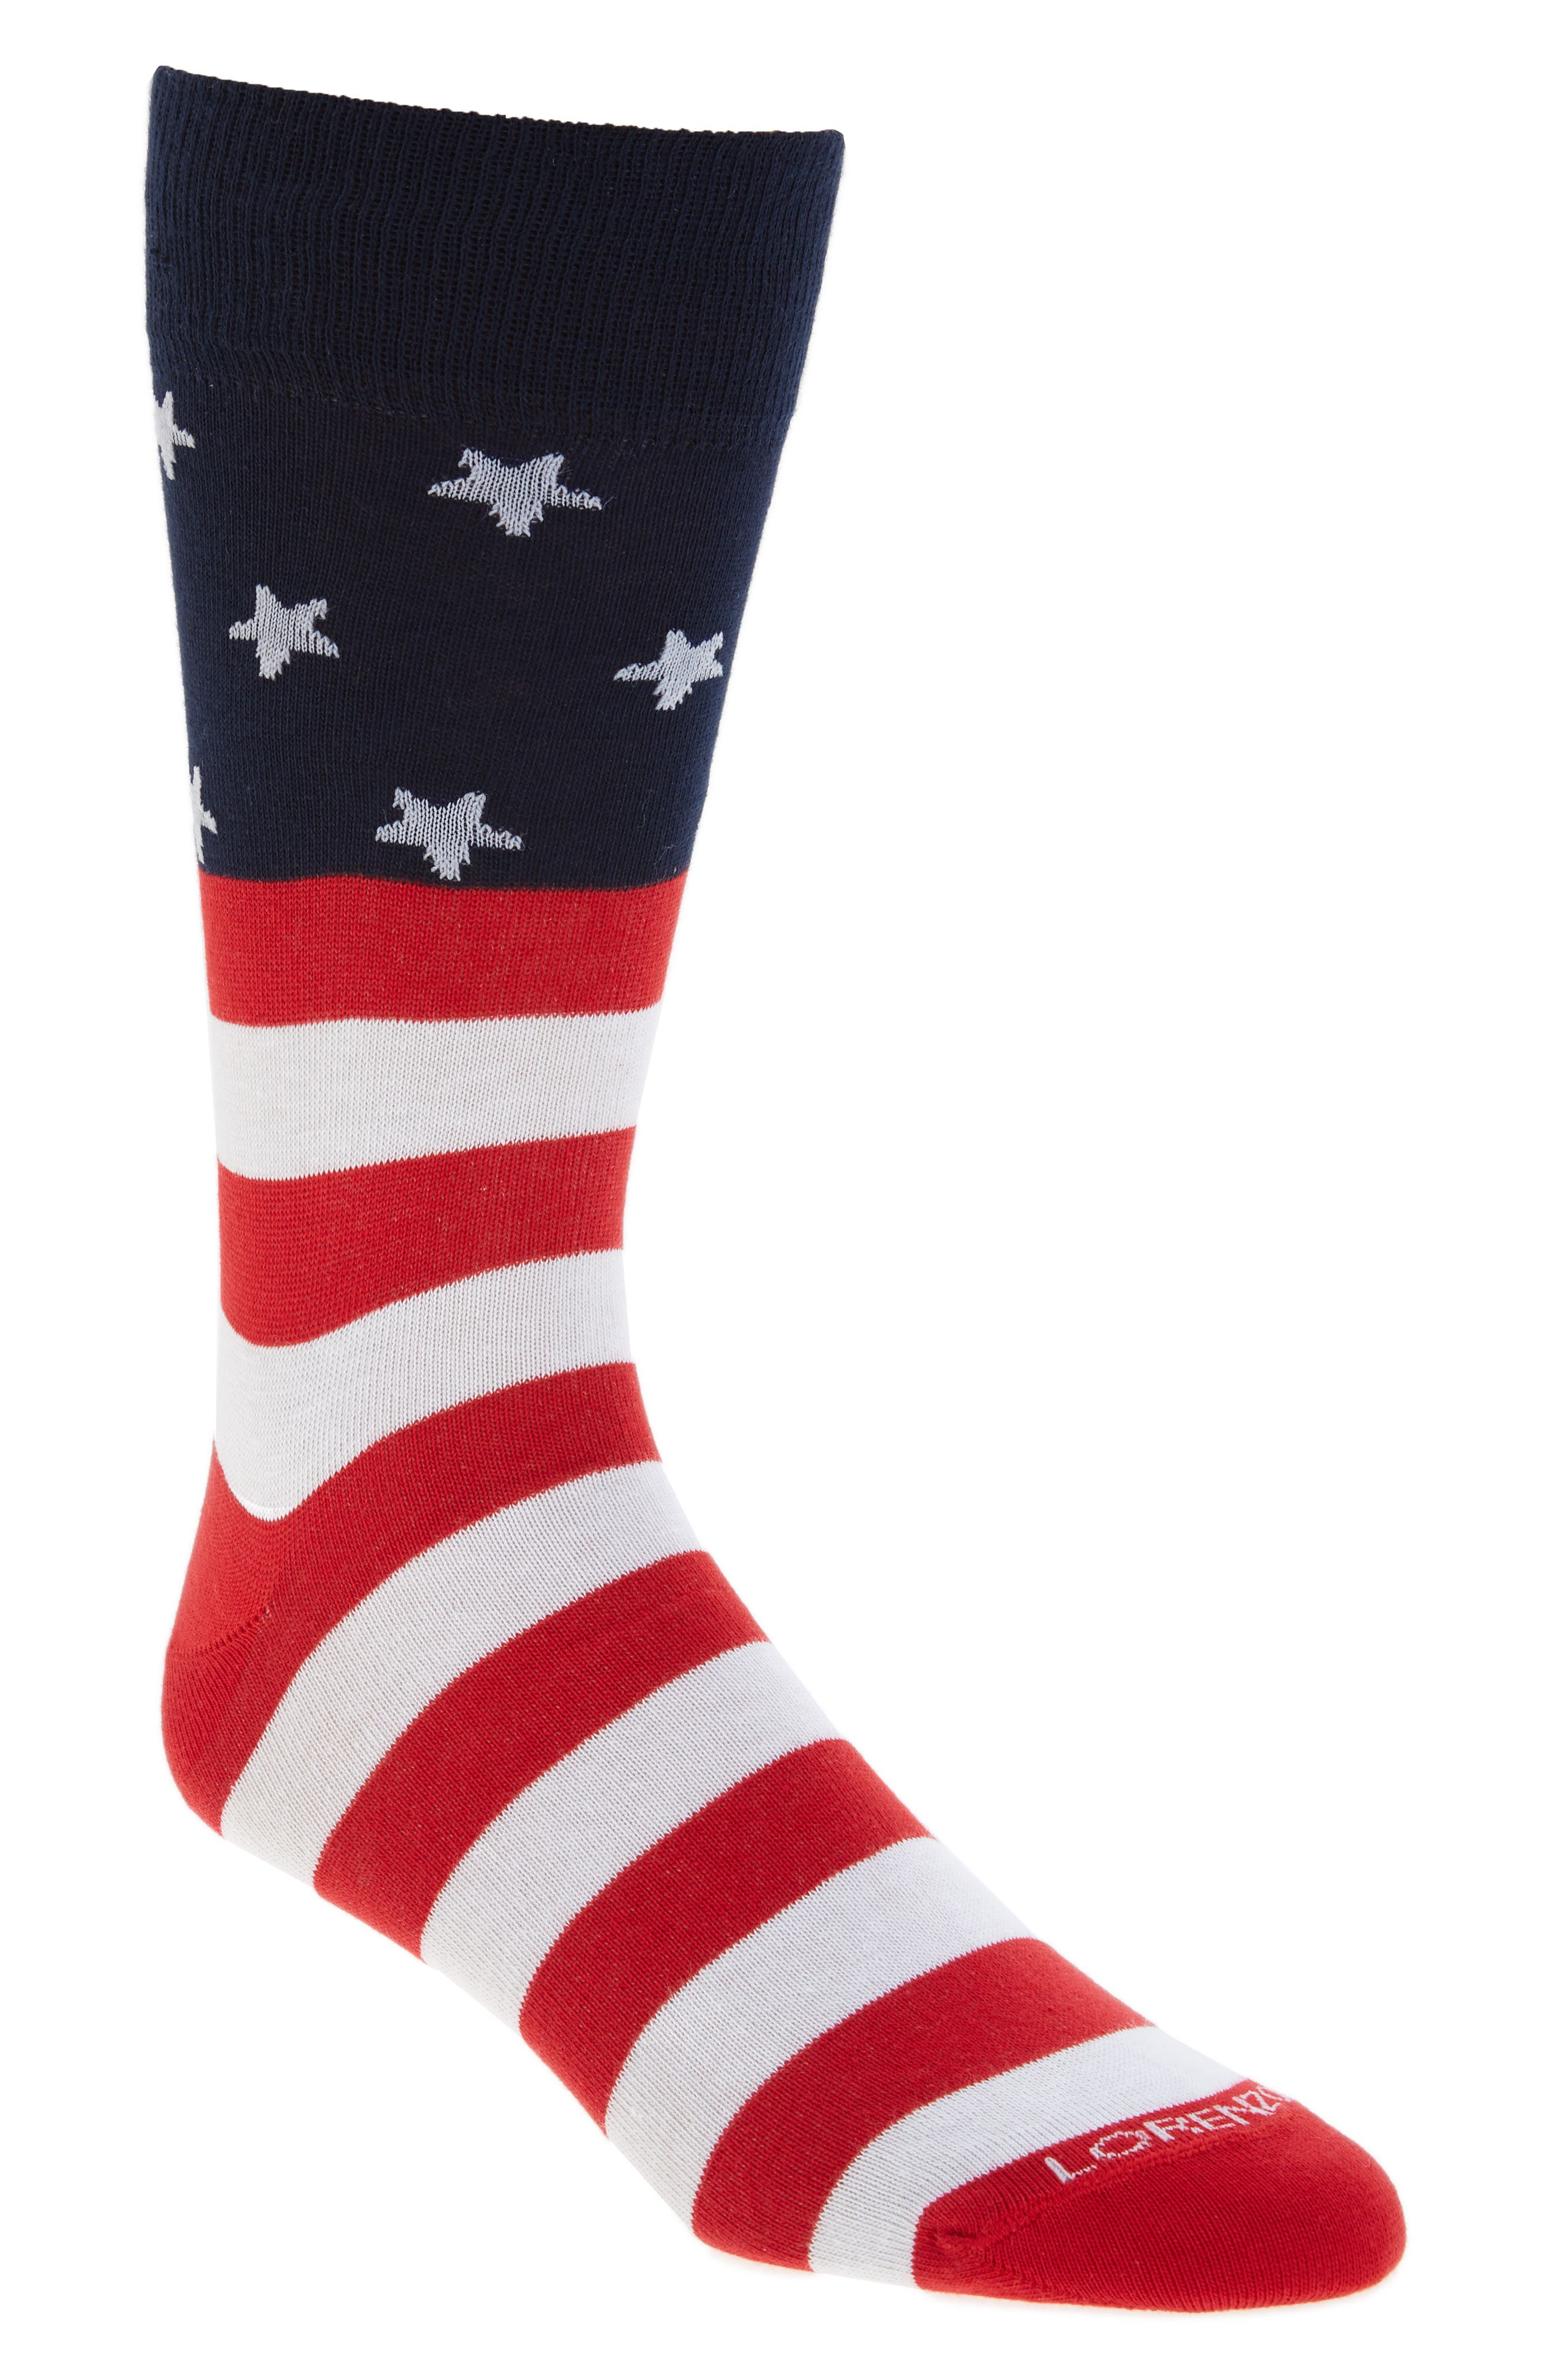 Alternate Image 1 Selected - Lorenzo Uomo Americana Crew Socks (3 for $30)